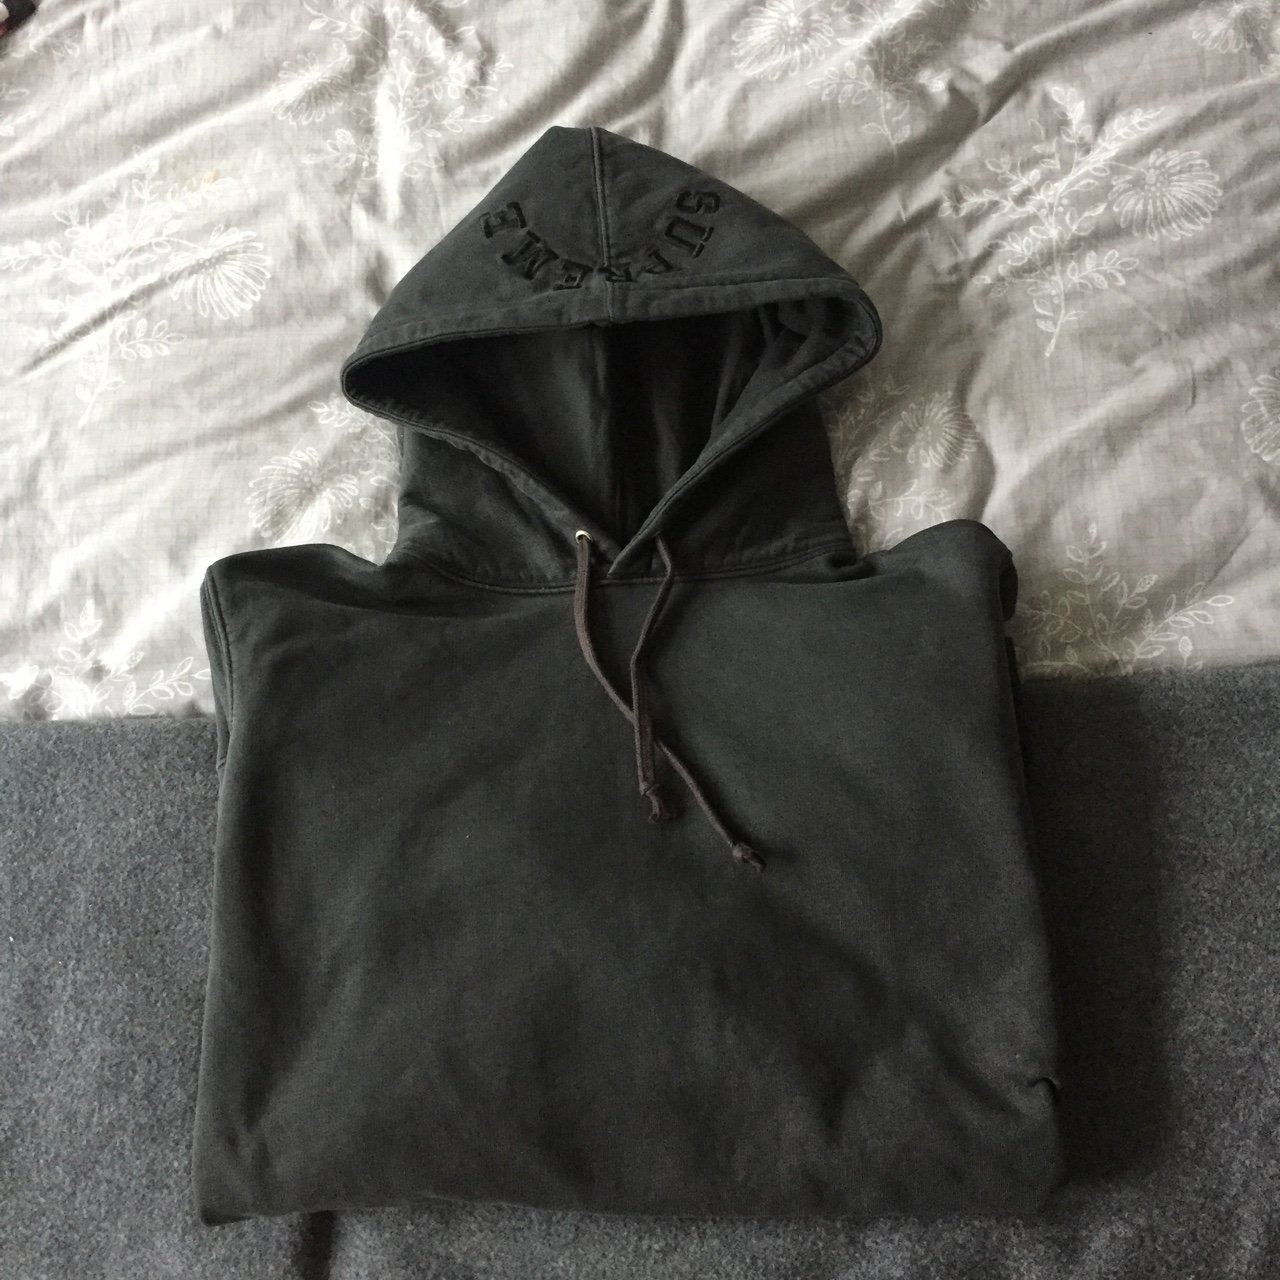 91e4c05d036c Supreme Overdyed hoodie in black SIZE L. 10 10 condition. PM - Depop